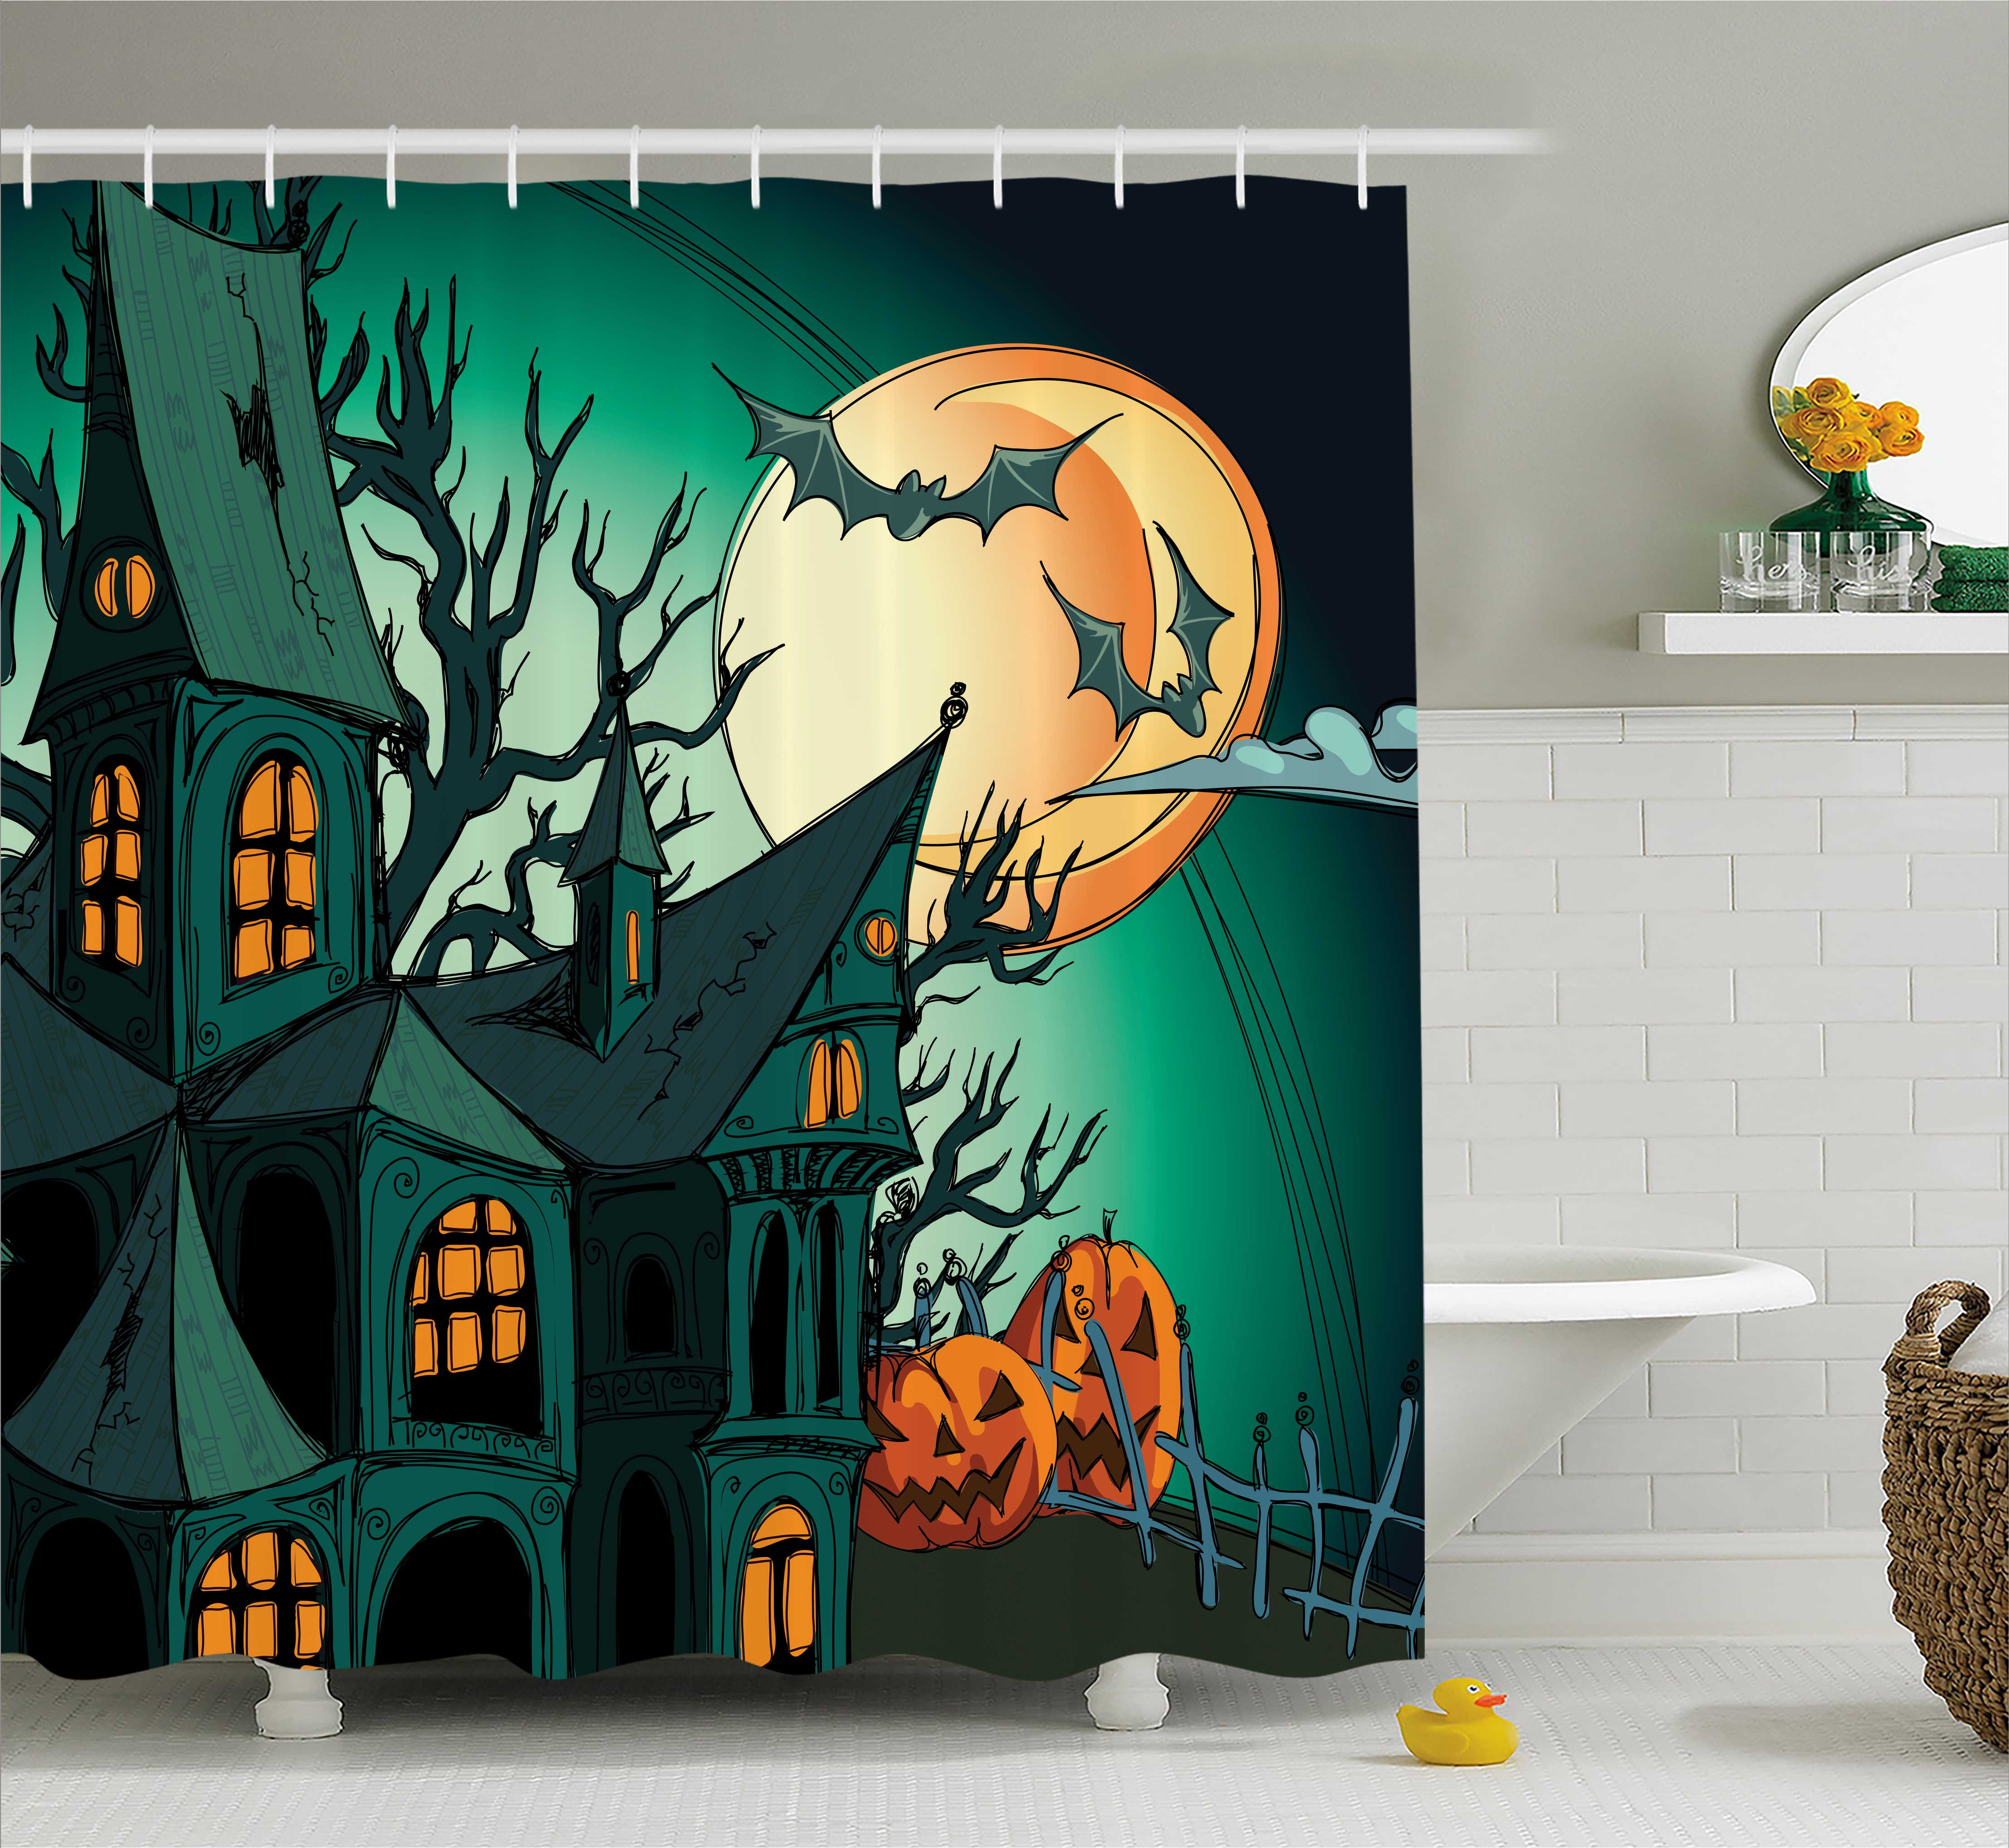 Halloween Shower Curtain, Haunted Medieval Cartoon Style Bats in Twilight Gothic Fiction Spooky Art Print, Fabric Bathroom Set with Hooks, Orange Teal, by Ambesonne